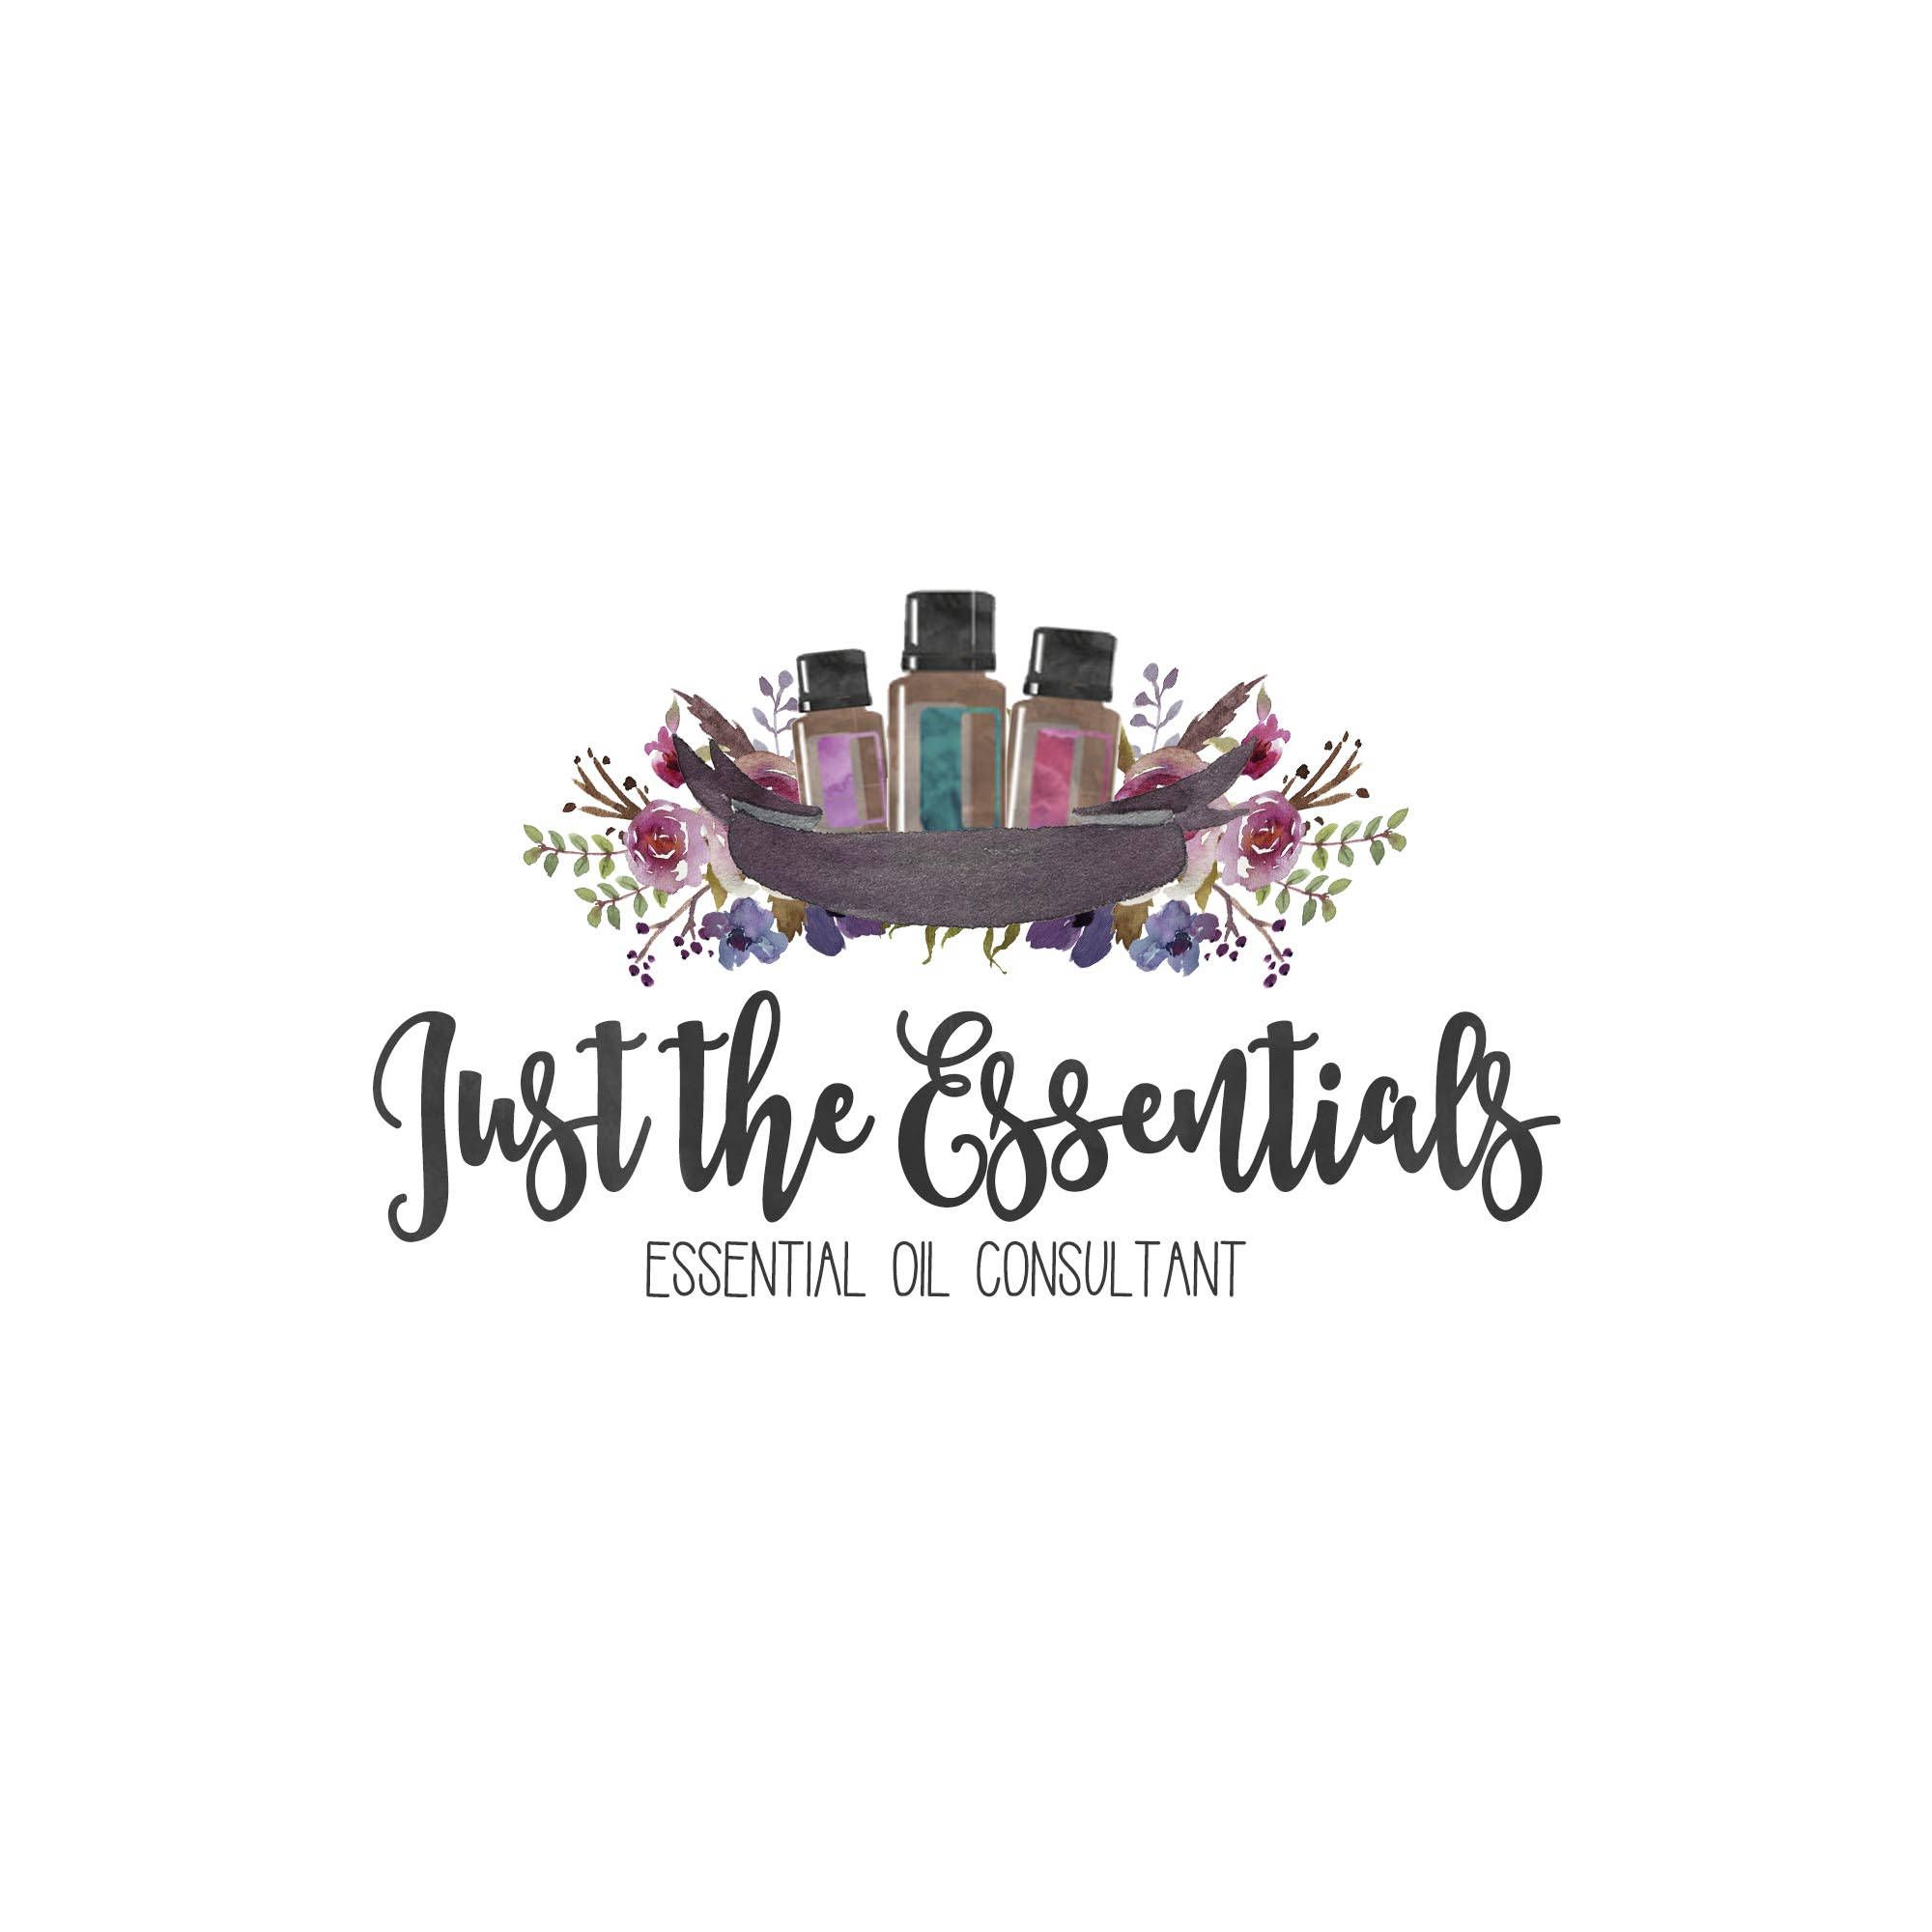 Essential Oil Logo Consultant Business Branding